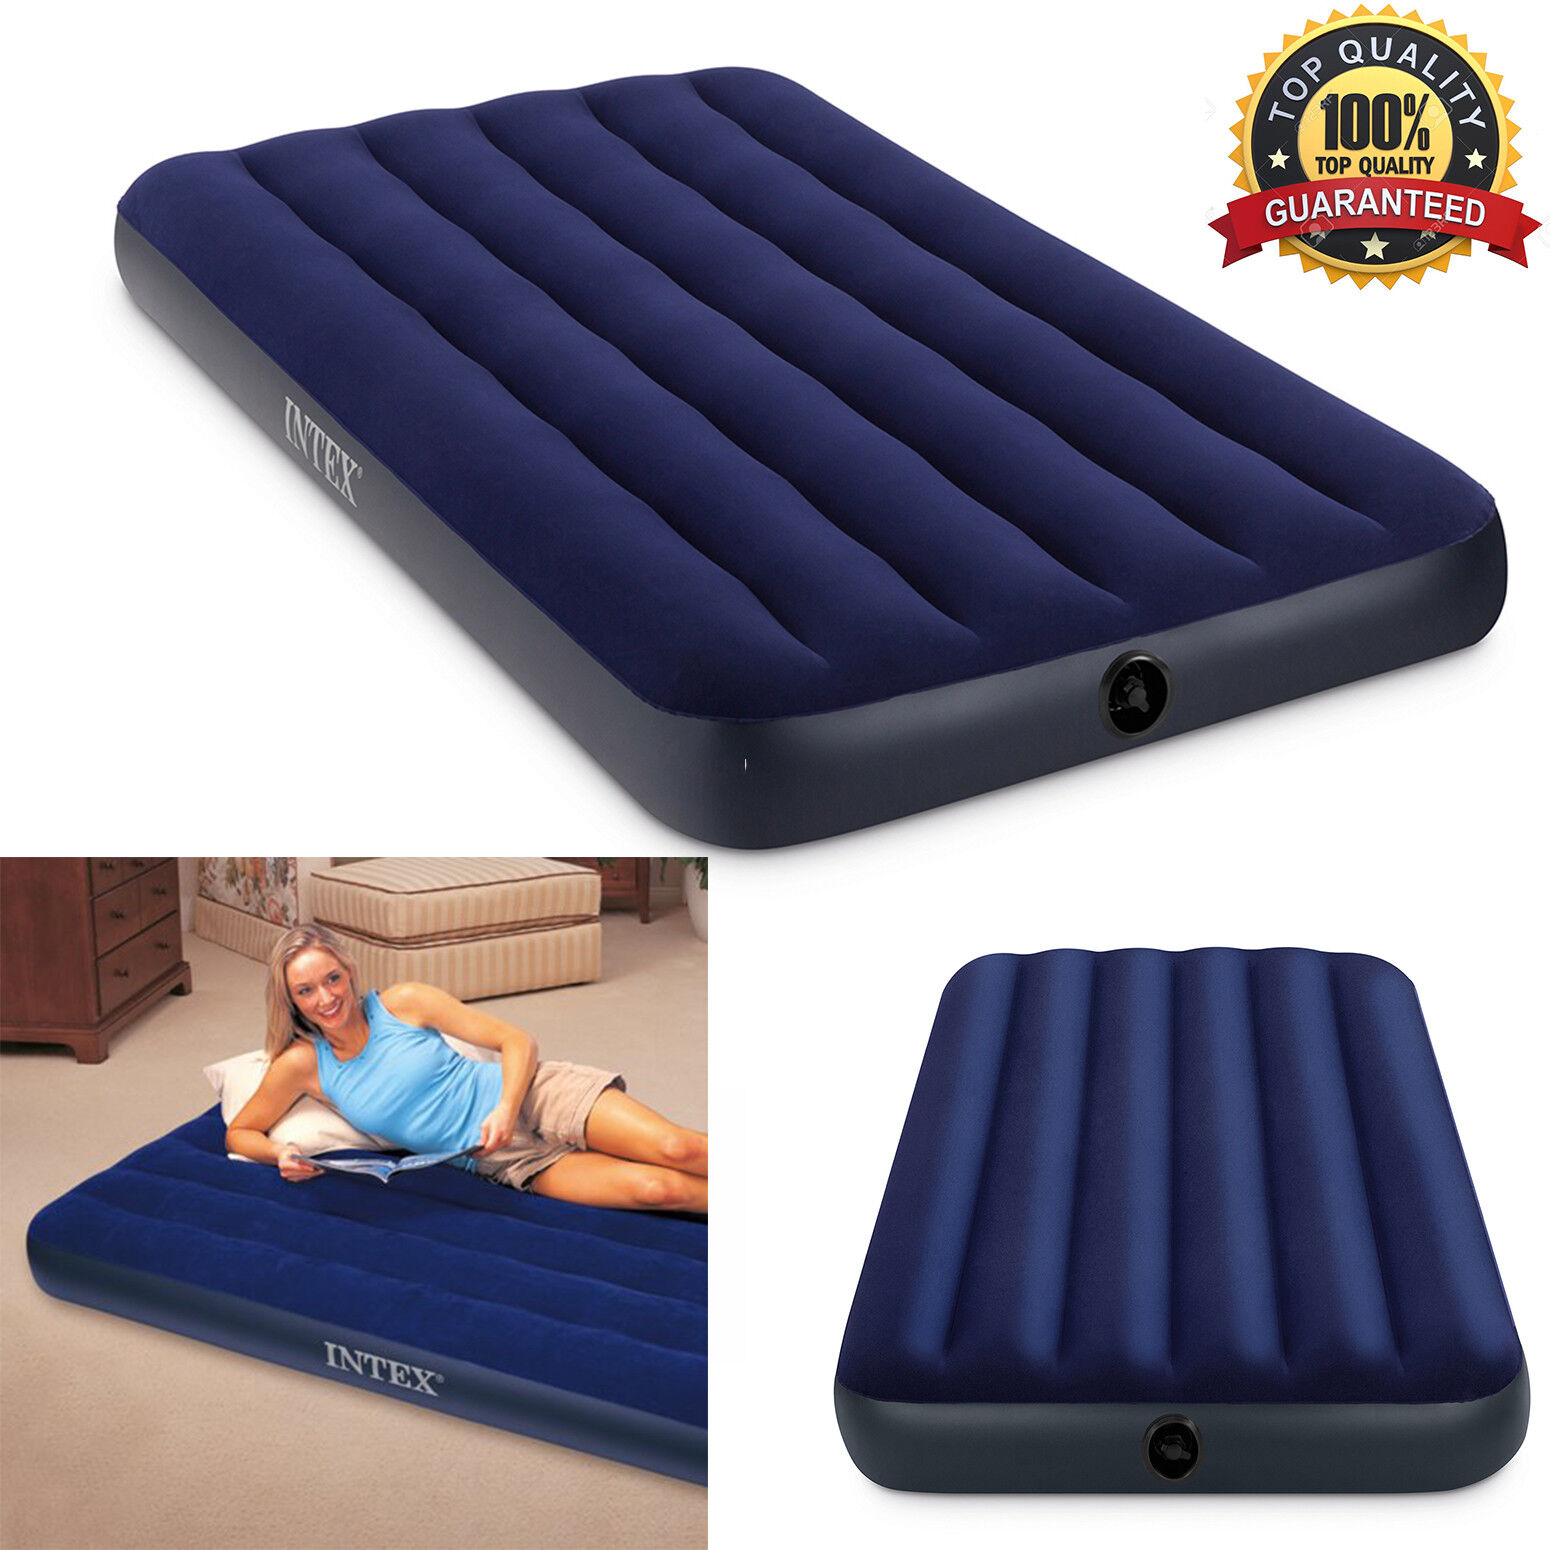 Camping Air Mattress Twin Size Sleeping Inflatable Airbed In